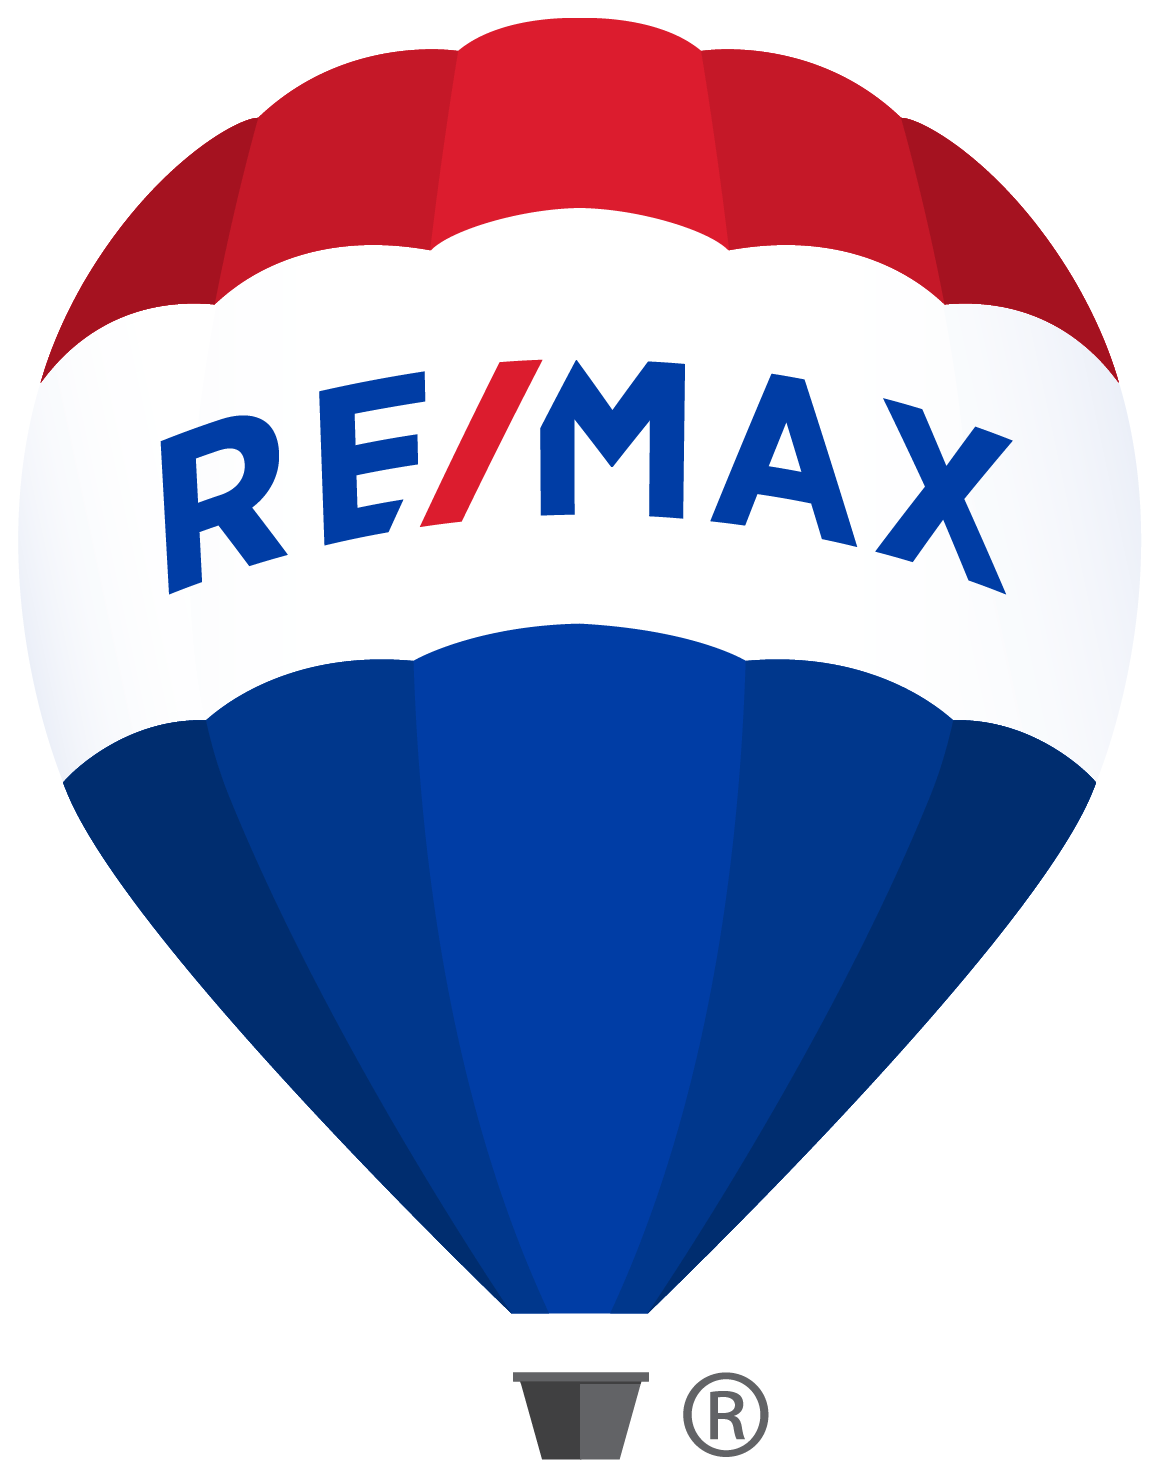 REMAX_mastrBalloon_RGB_R